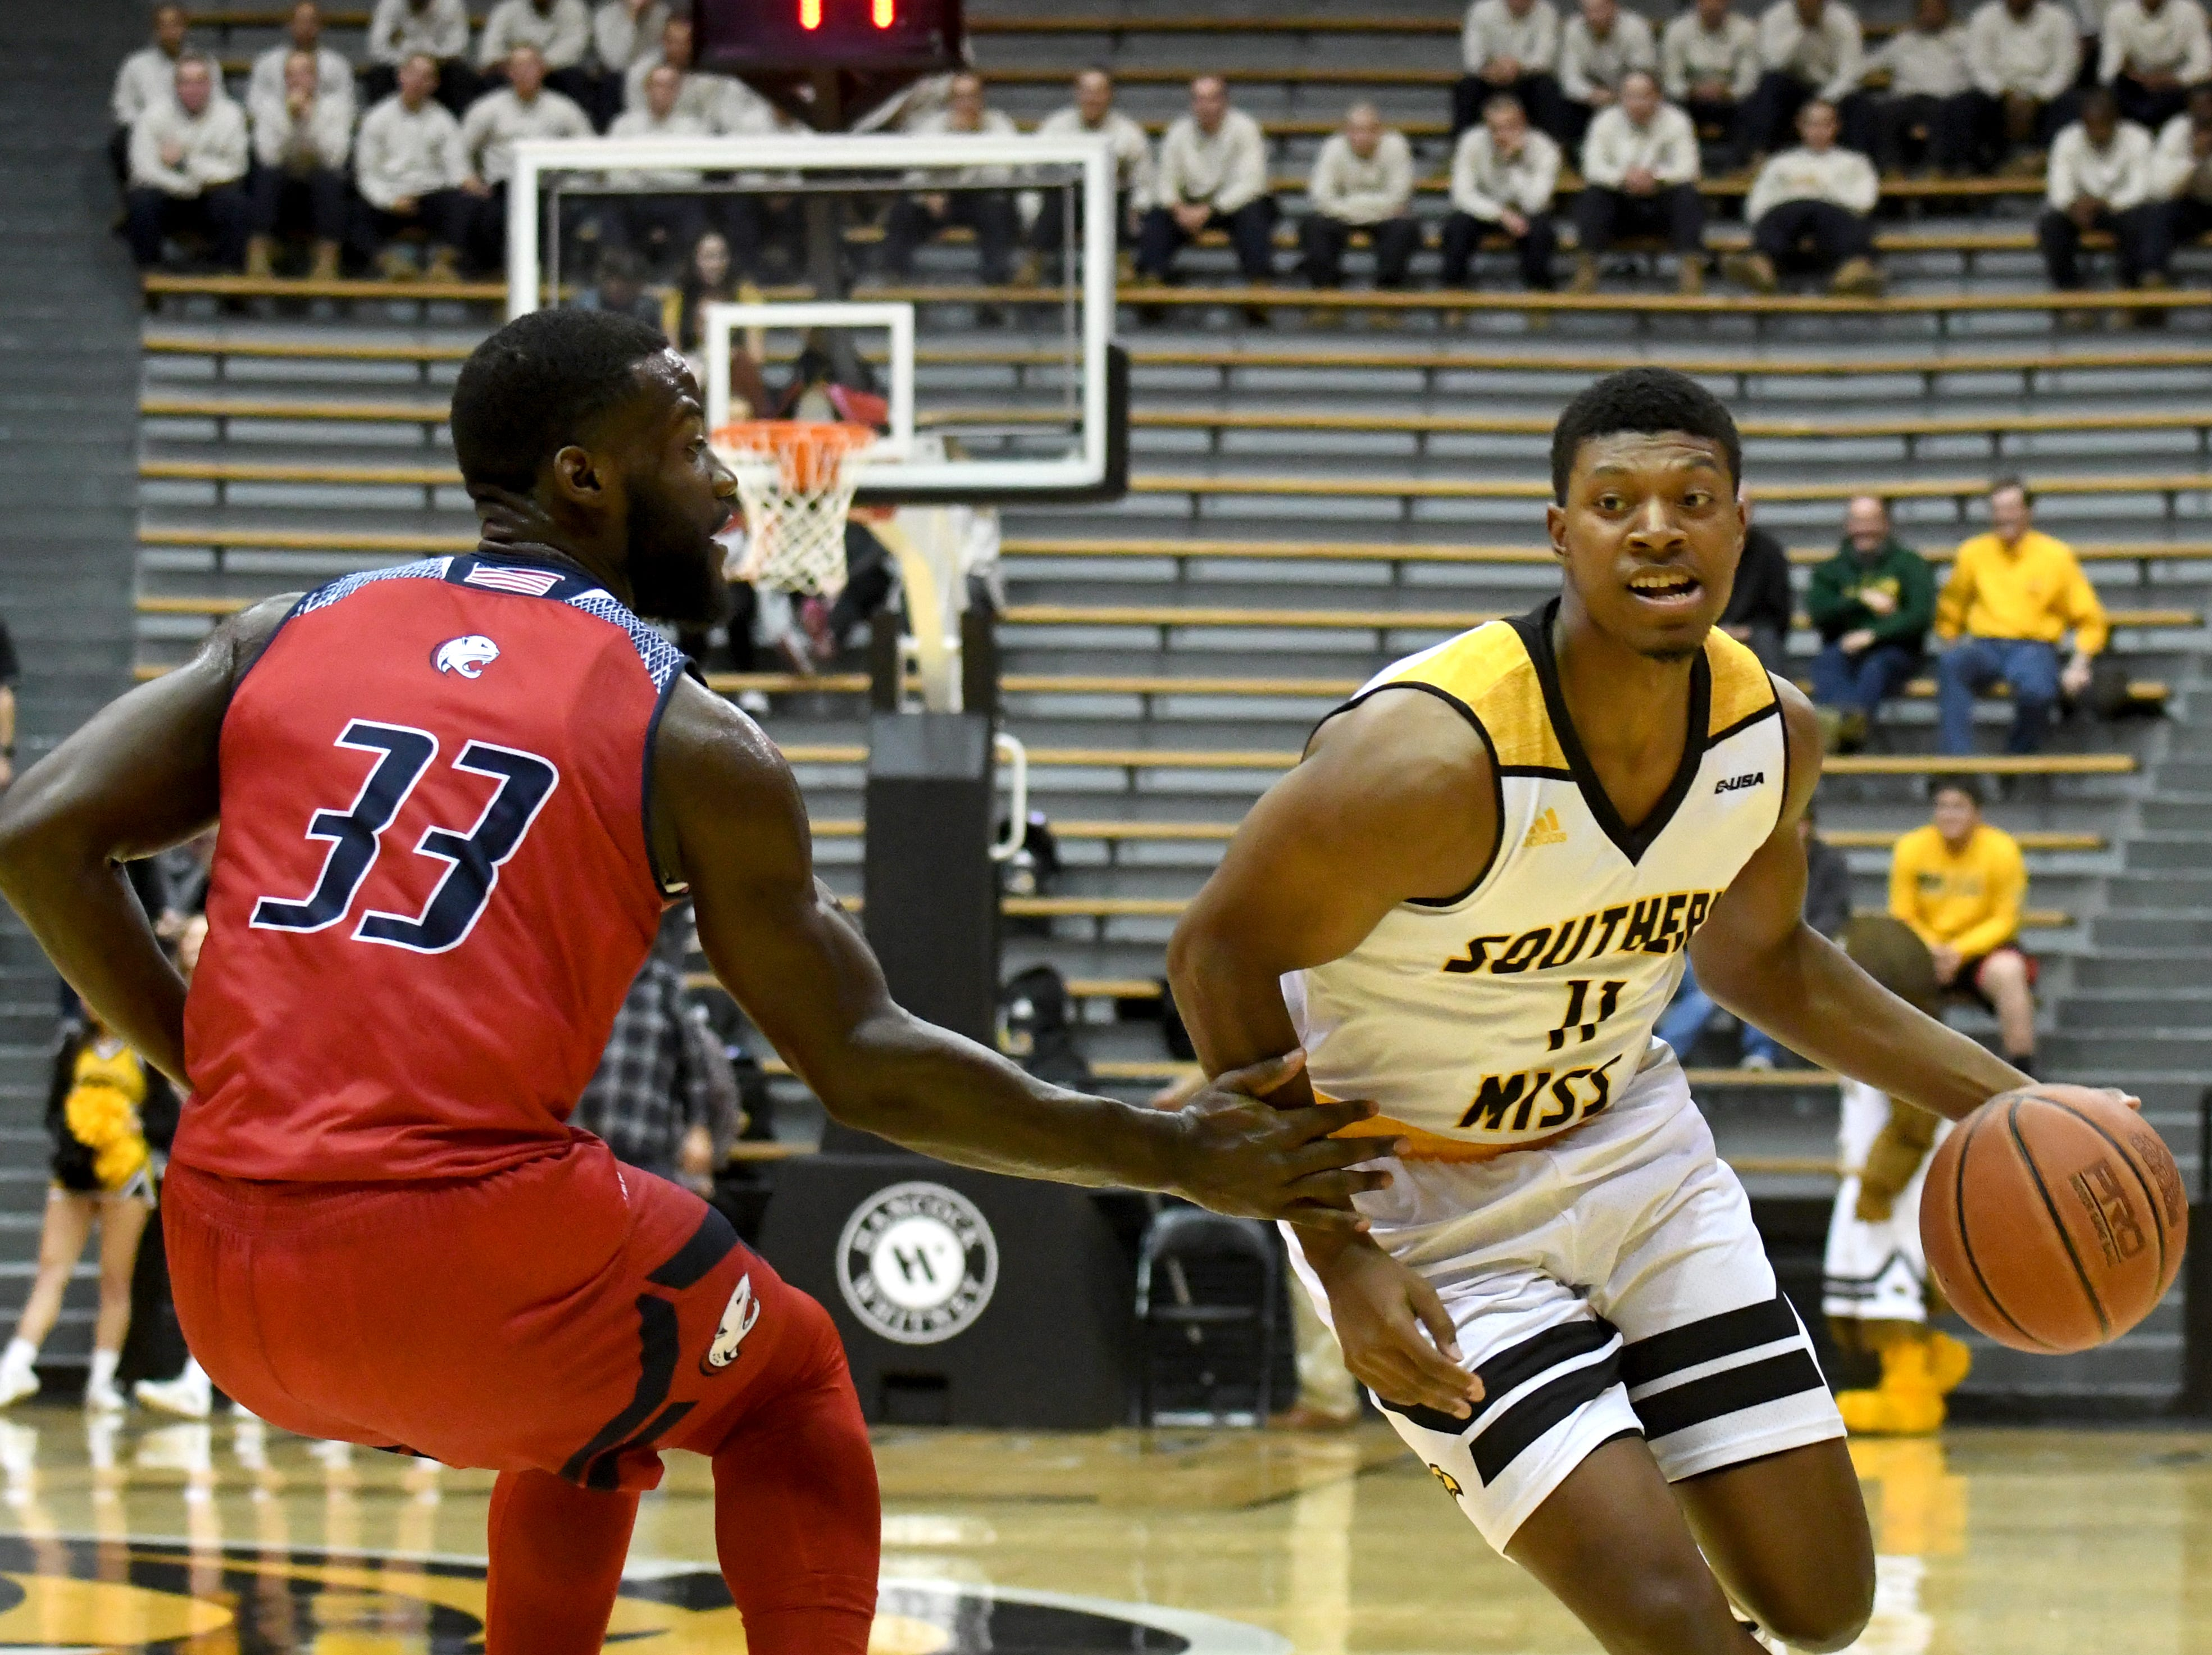 Southern Miss guard Ladavius Draine passes a defender in a game against South Alabama in Reed Green Coliseum on Wednesday, November 28, 2018.